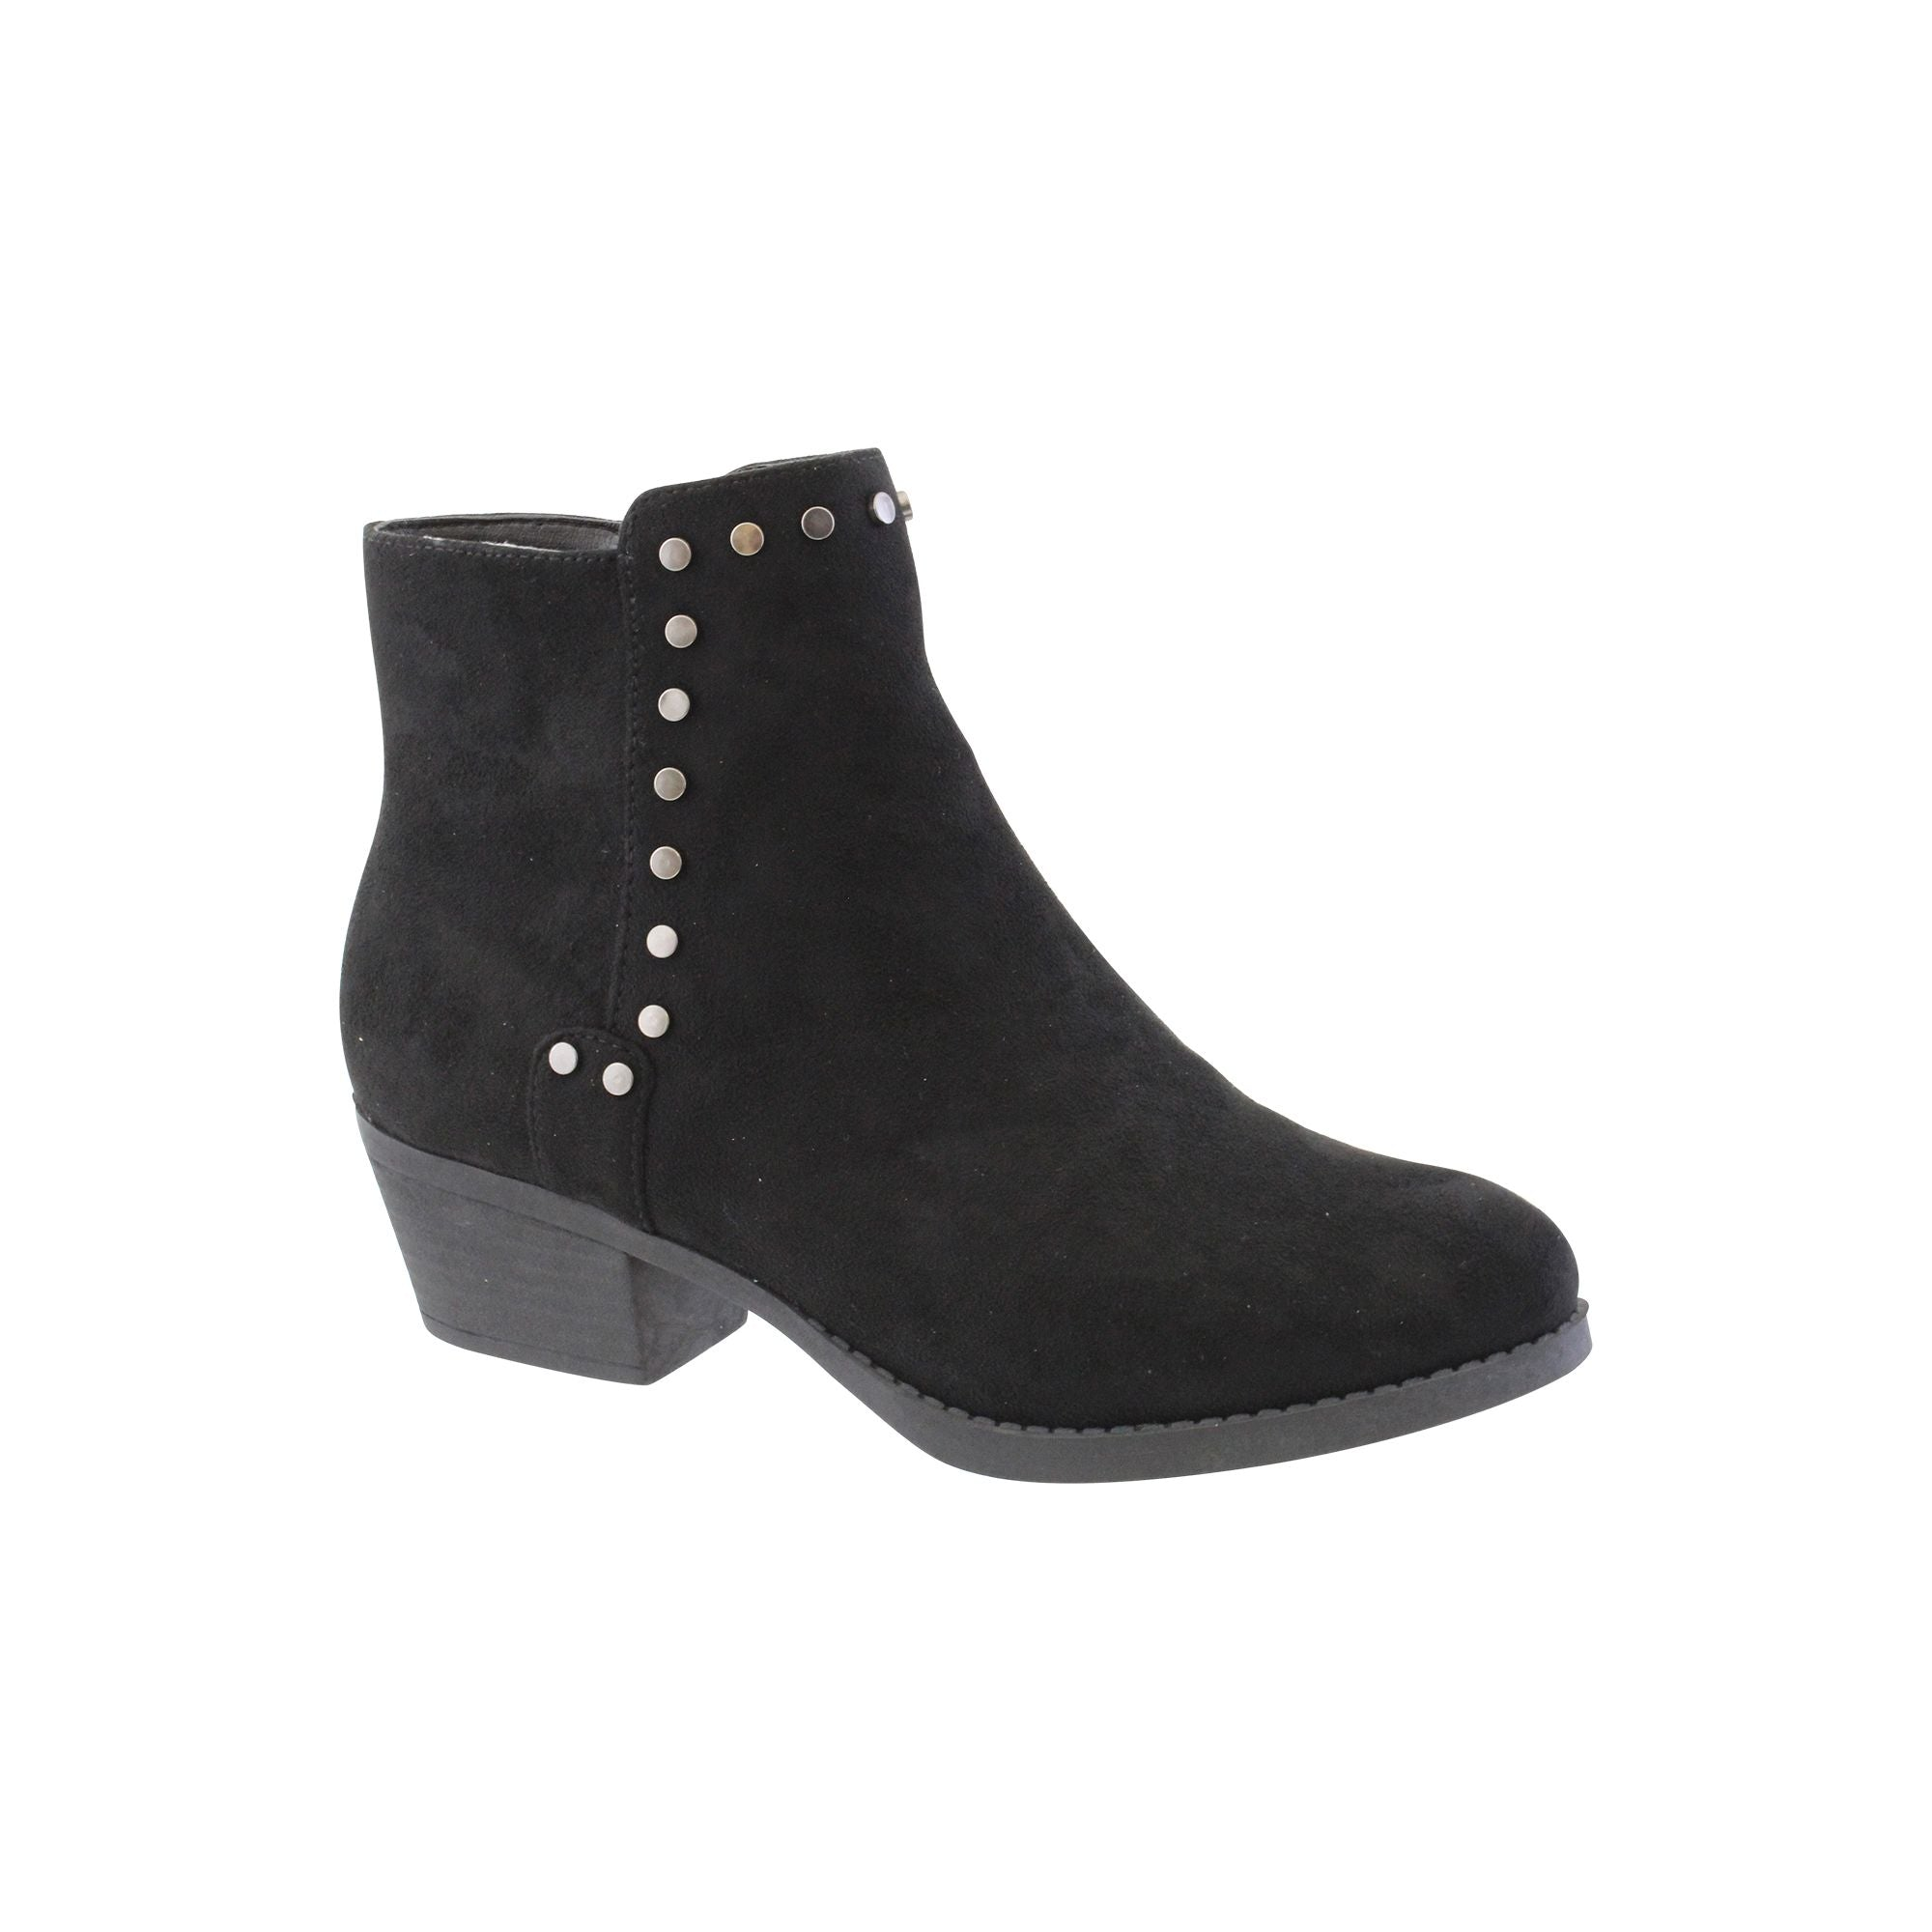 SUSST : Black Boot